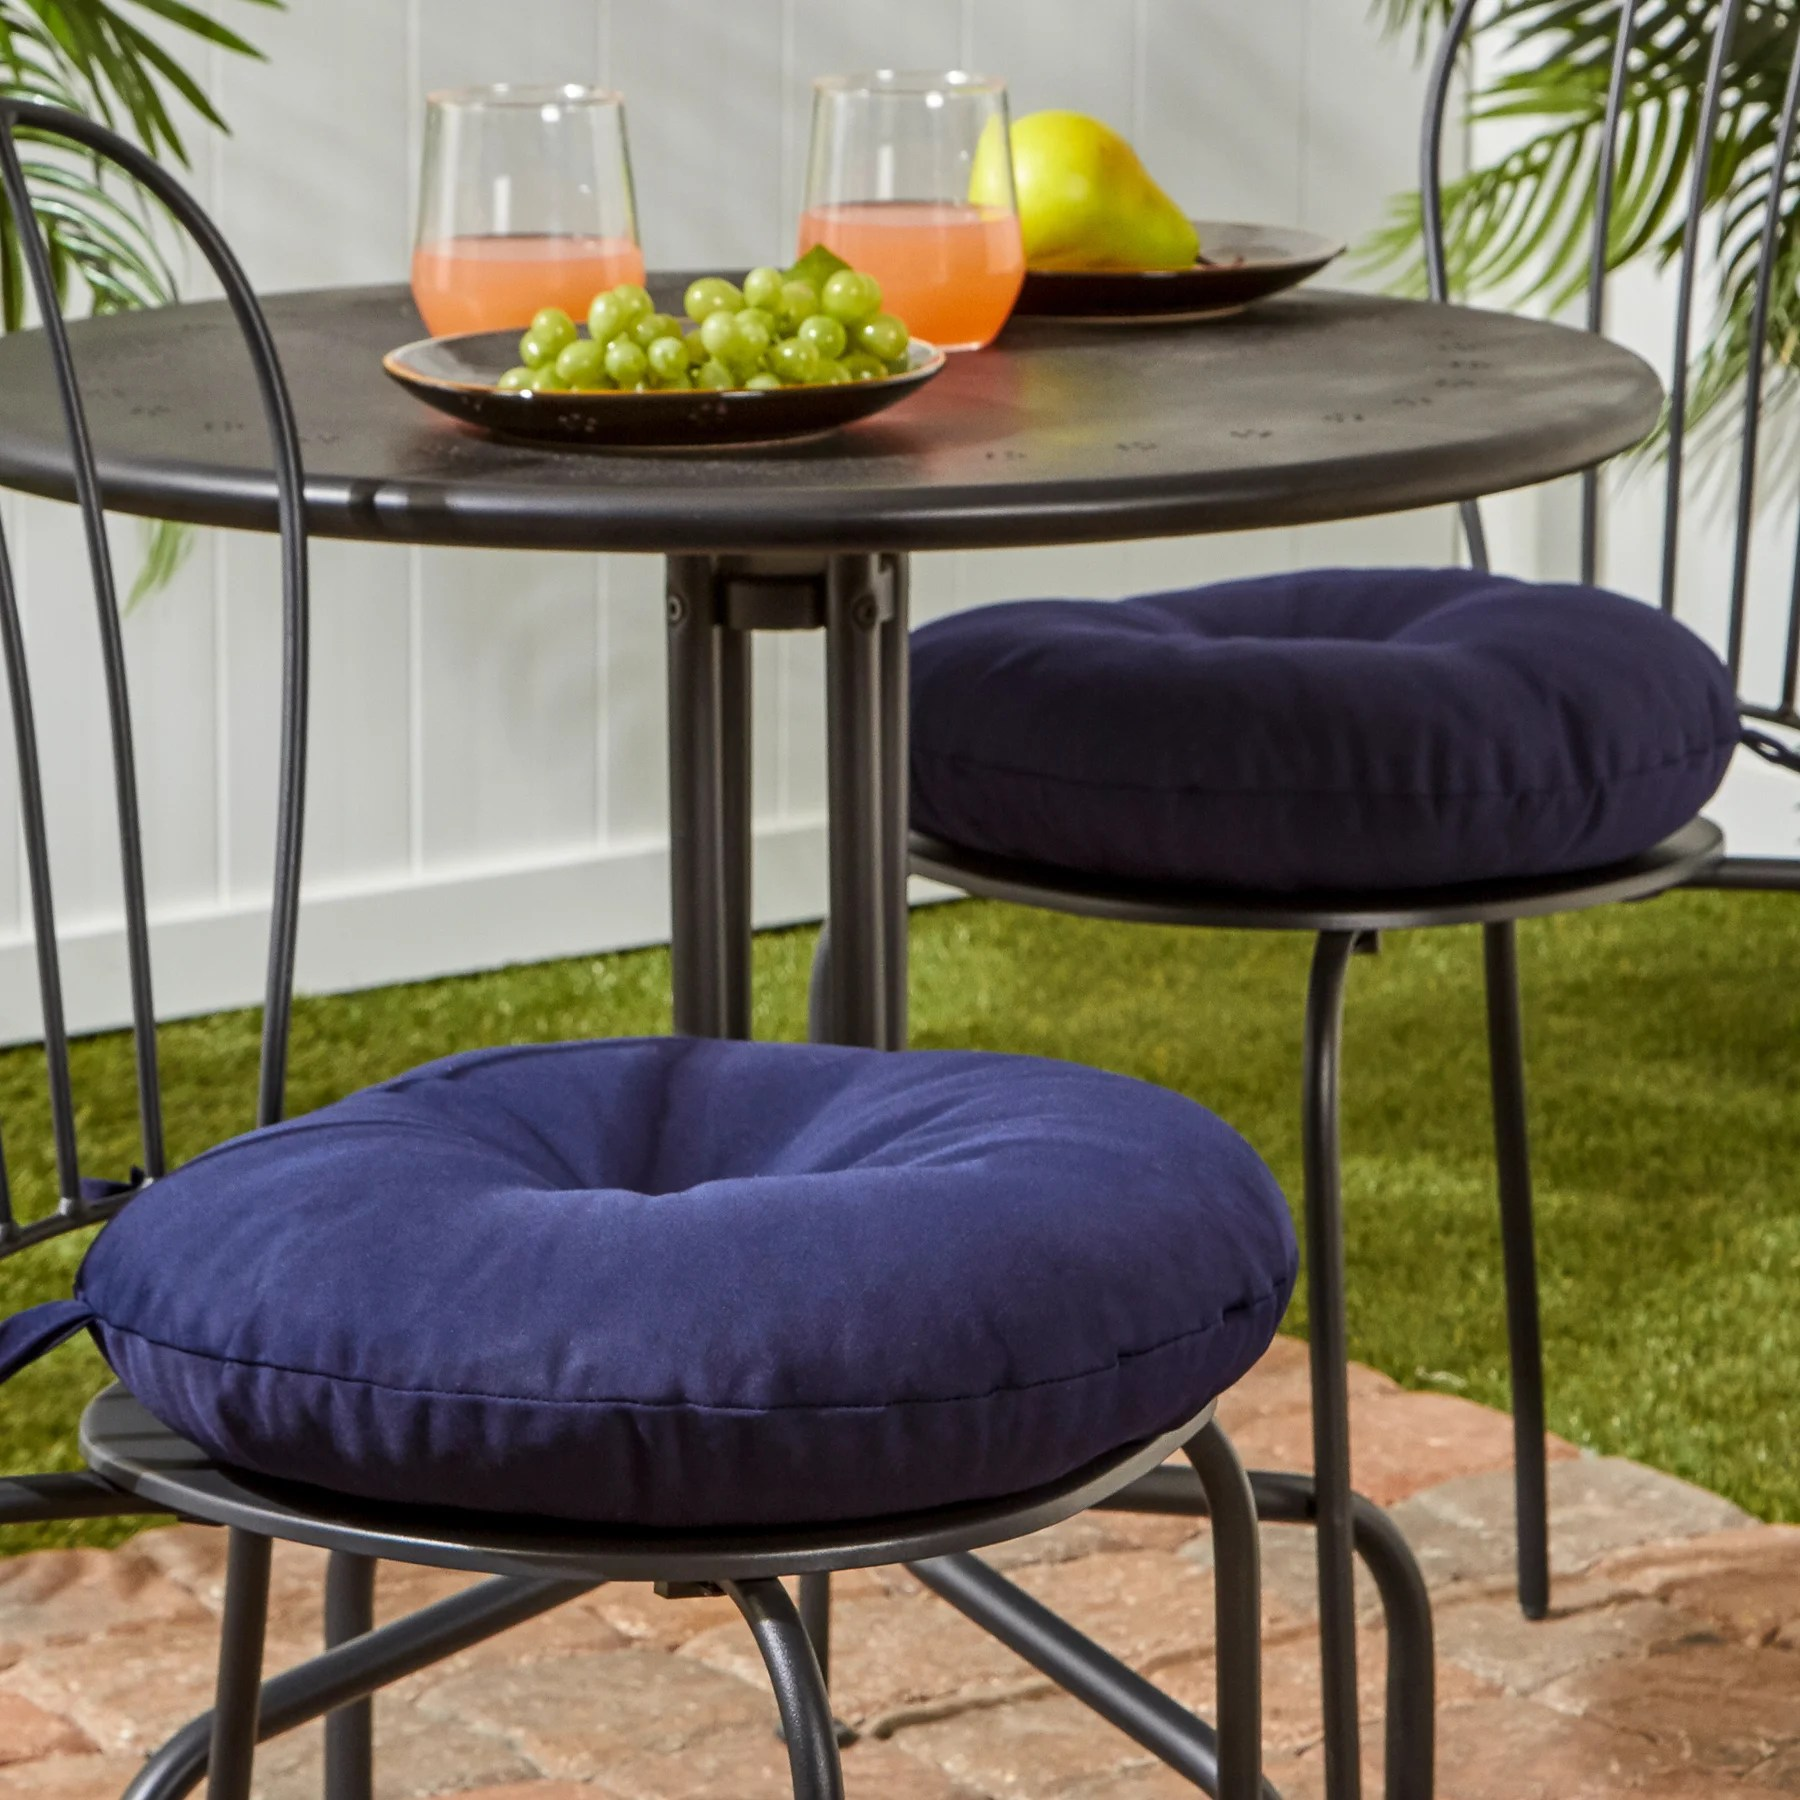 15 Inch Round Bistro Chair Cushions Outdoor Cushions And Pillows For Less Overstock